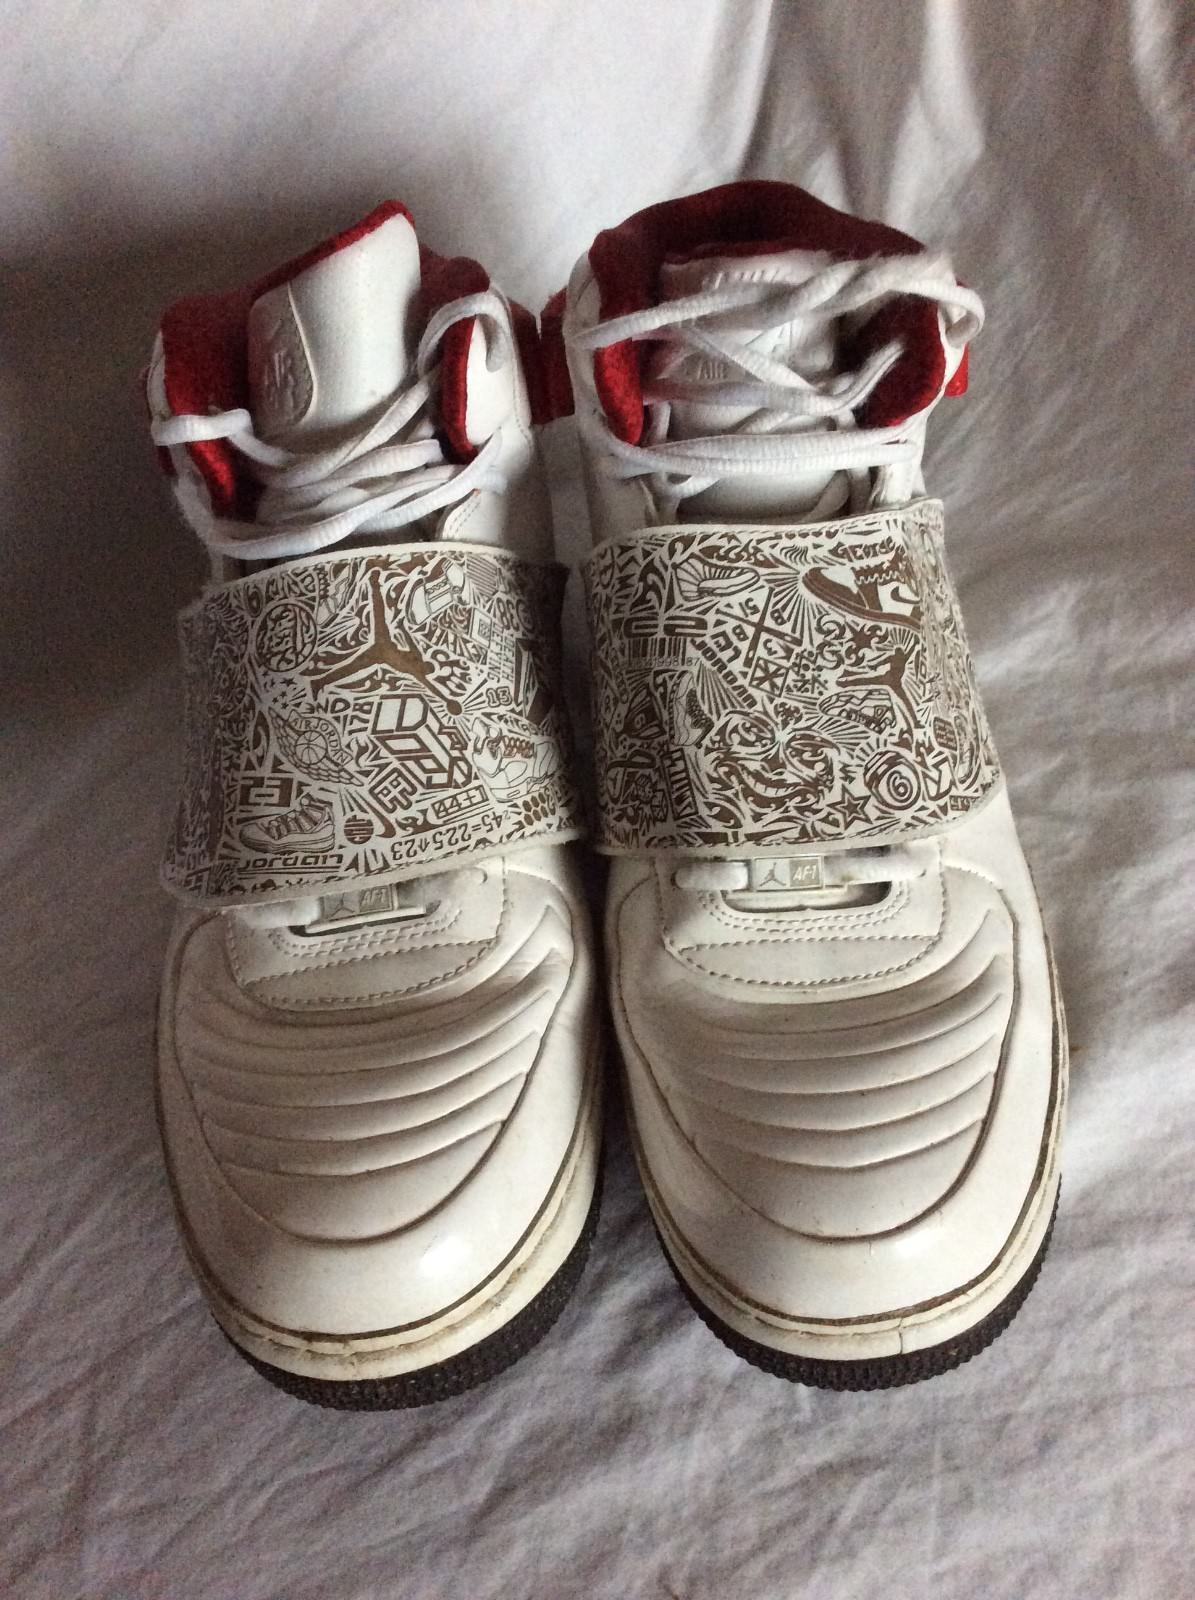 a5e682ff156dd9 Nike Air Jordan Fusion AJF 20 White Red Black Shoes Sneakers 331823 101 U.S  13